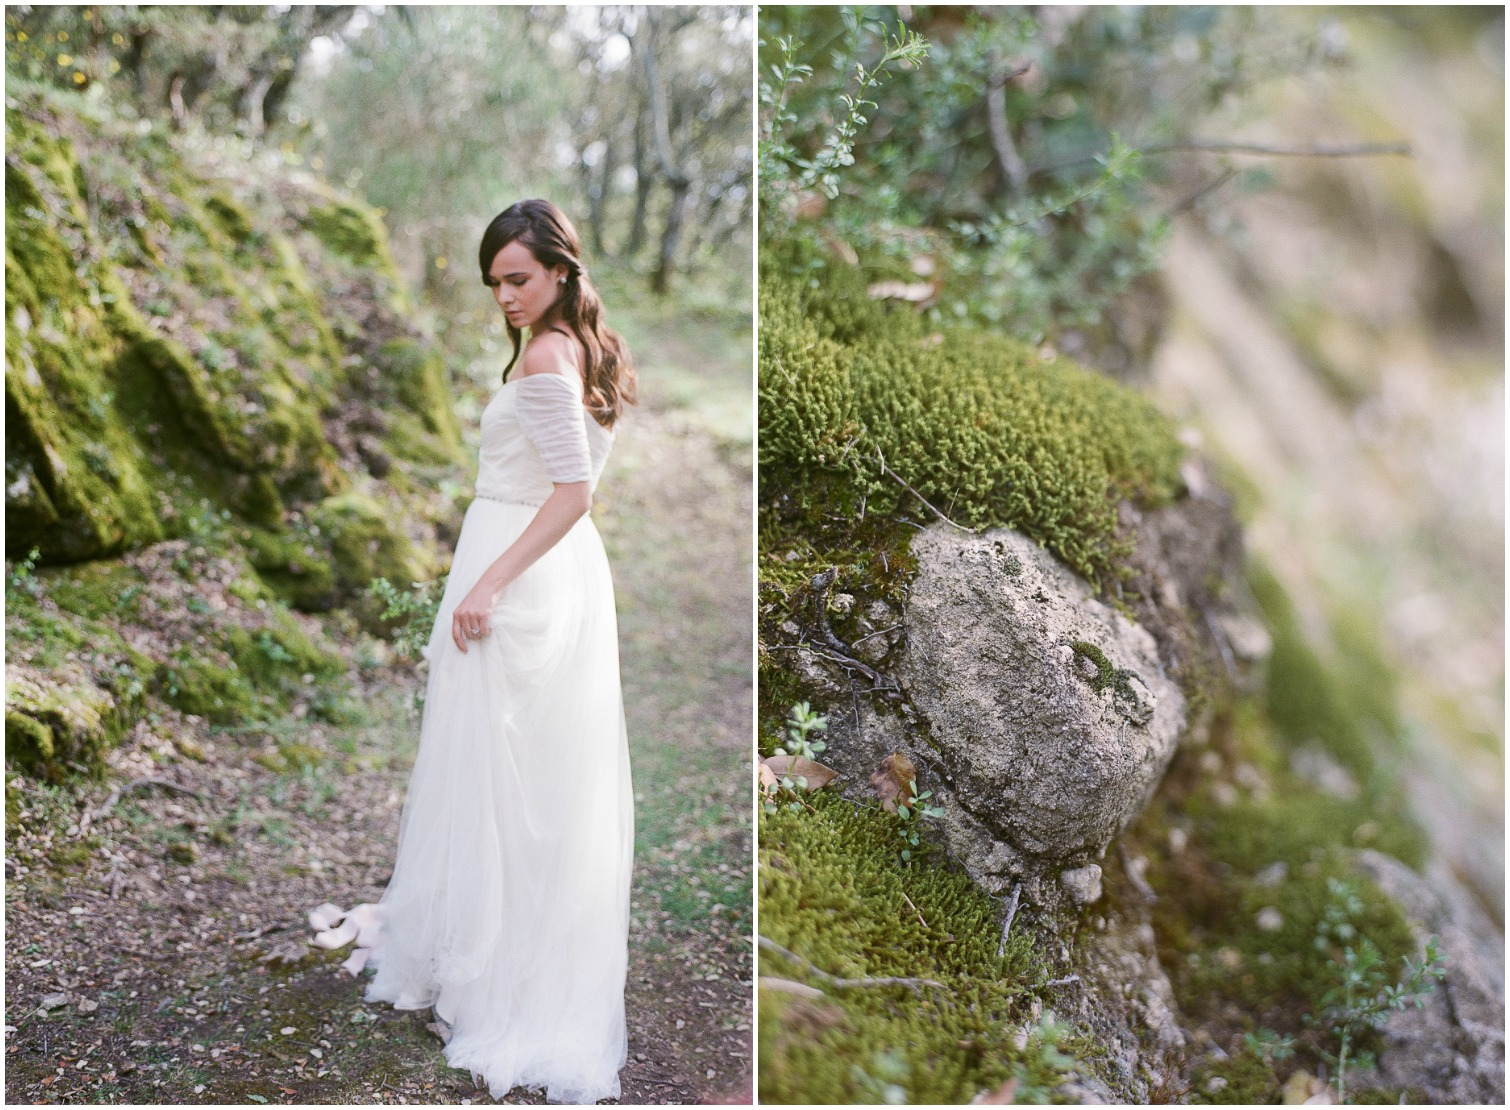 Romantic Bride in the woods ©Celine Chhuon